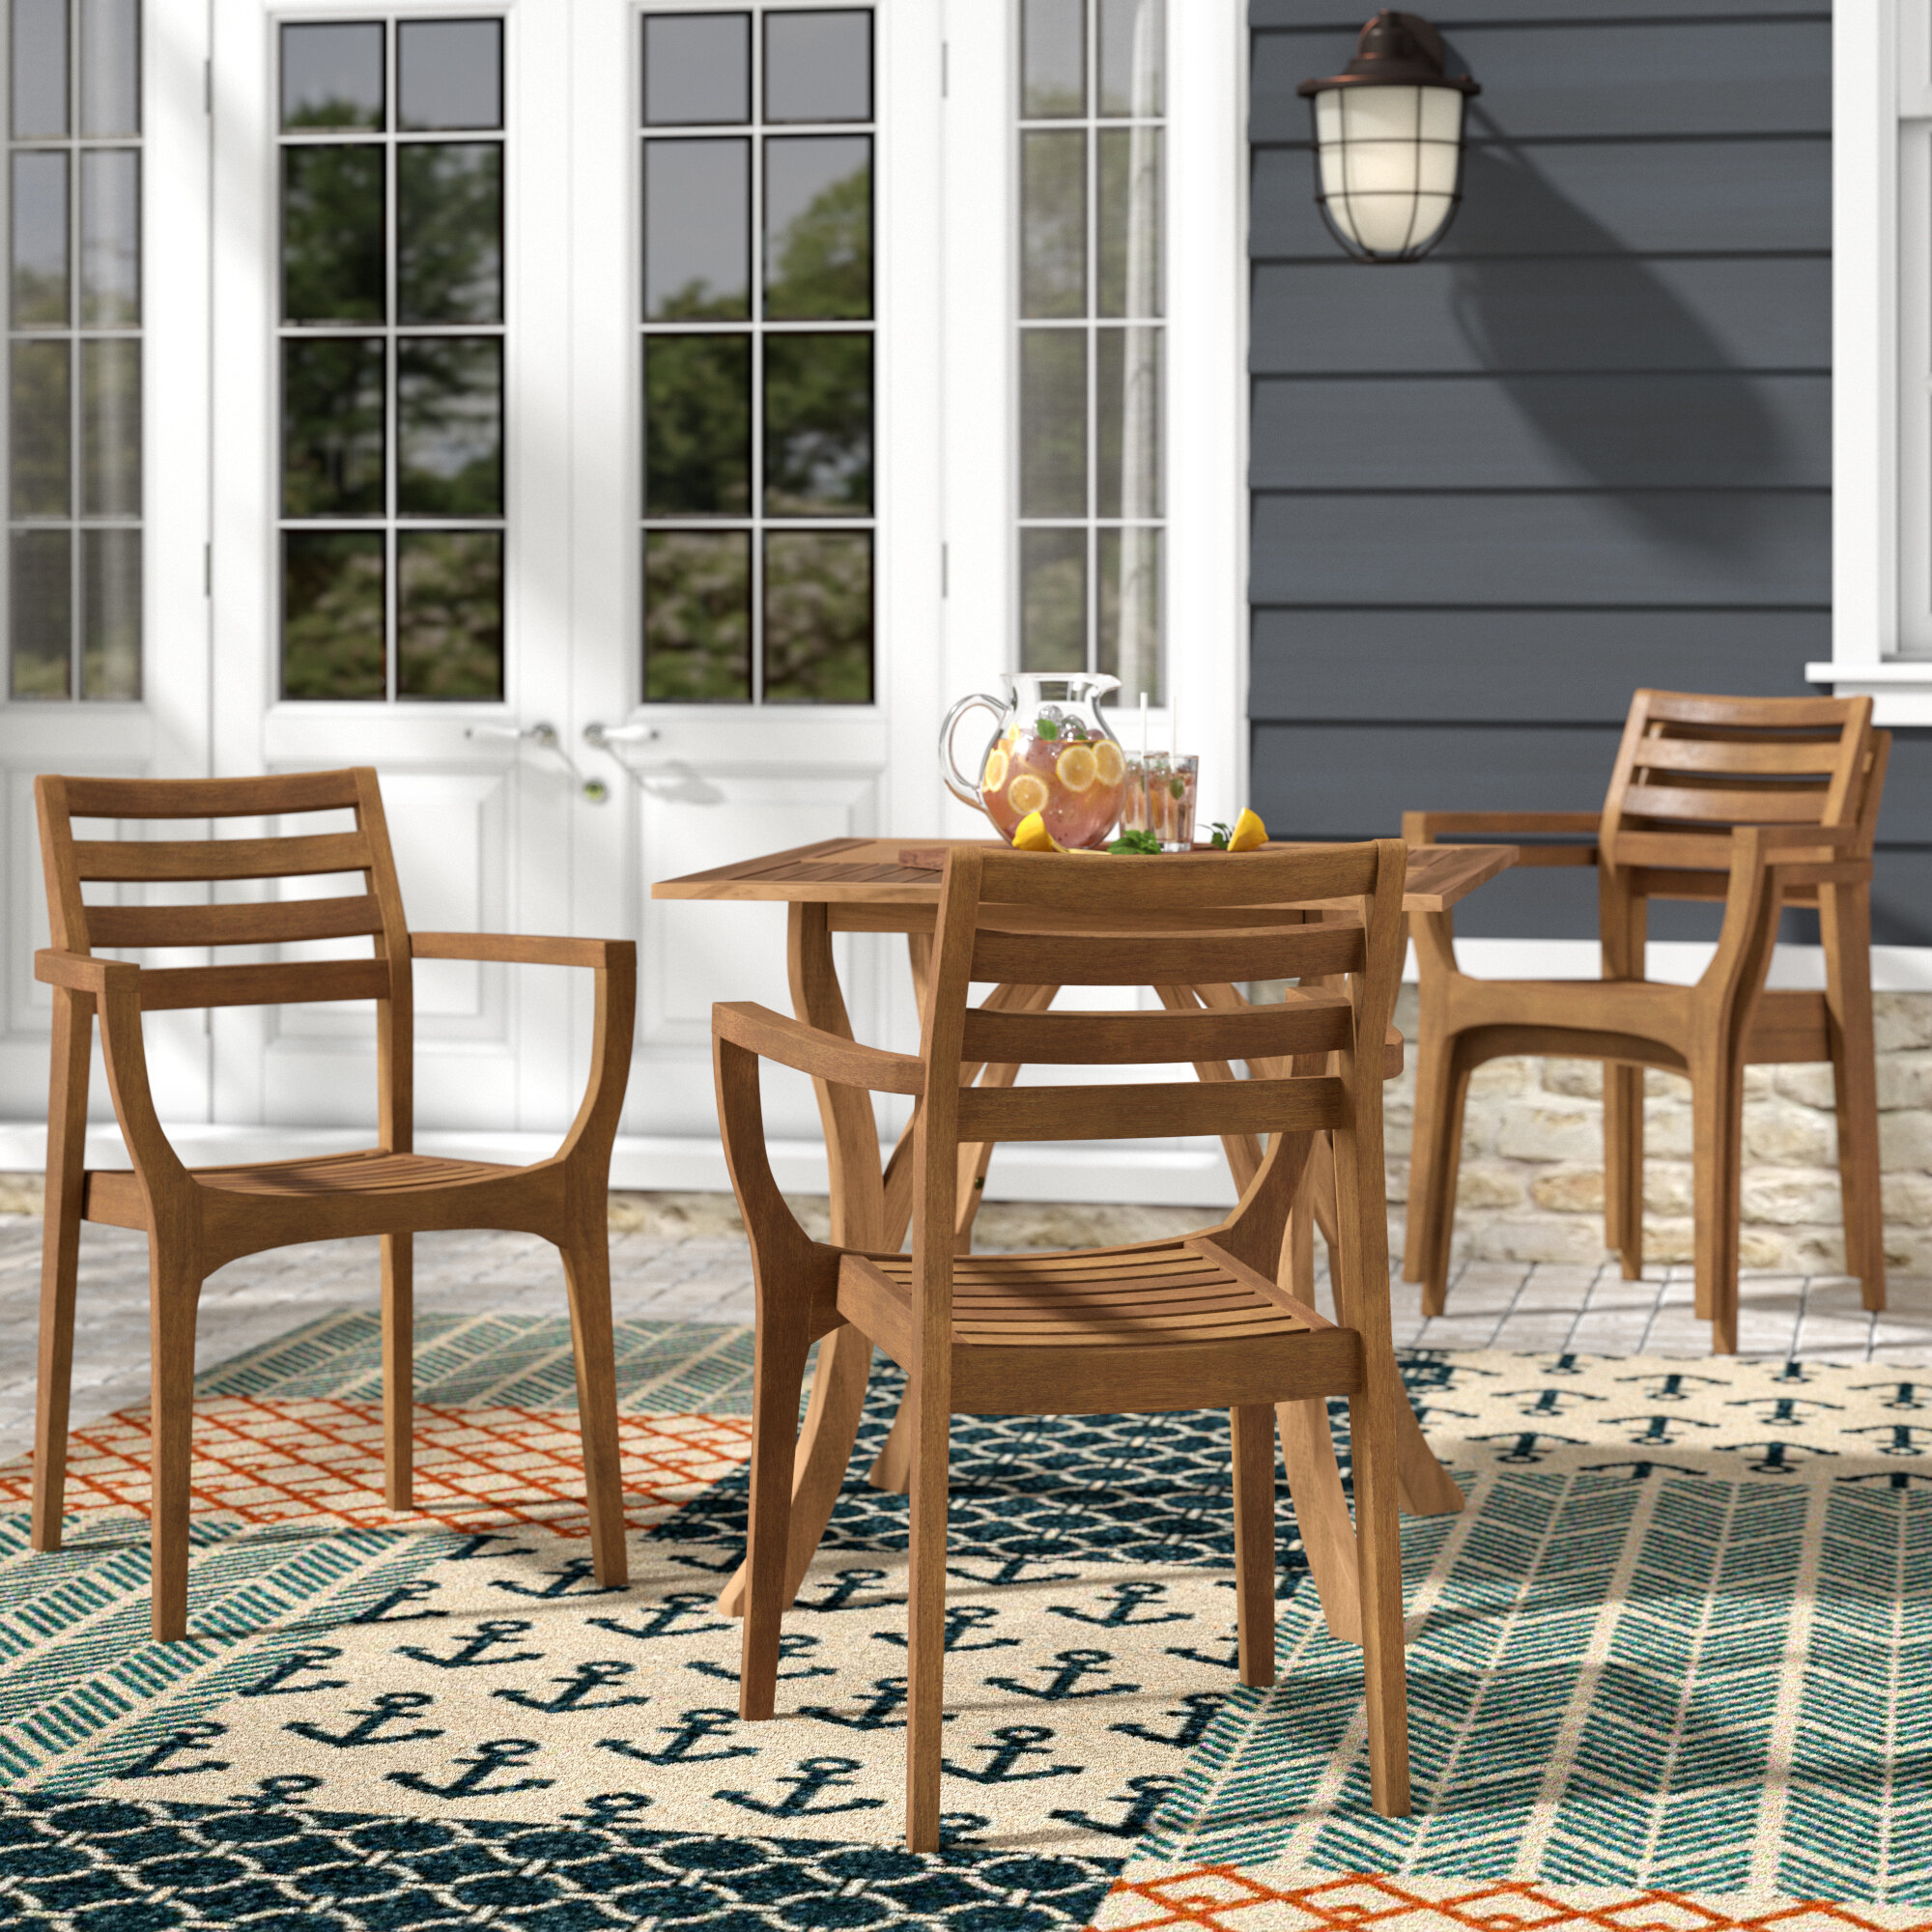 Beachcrest Home Roseland Stacking Patio Dining Chair